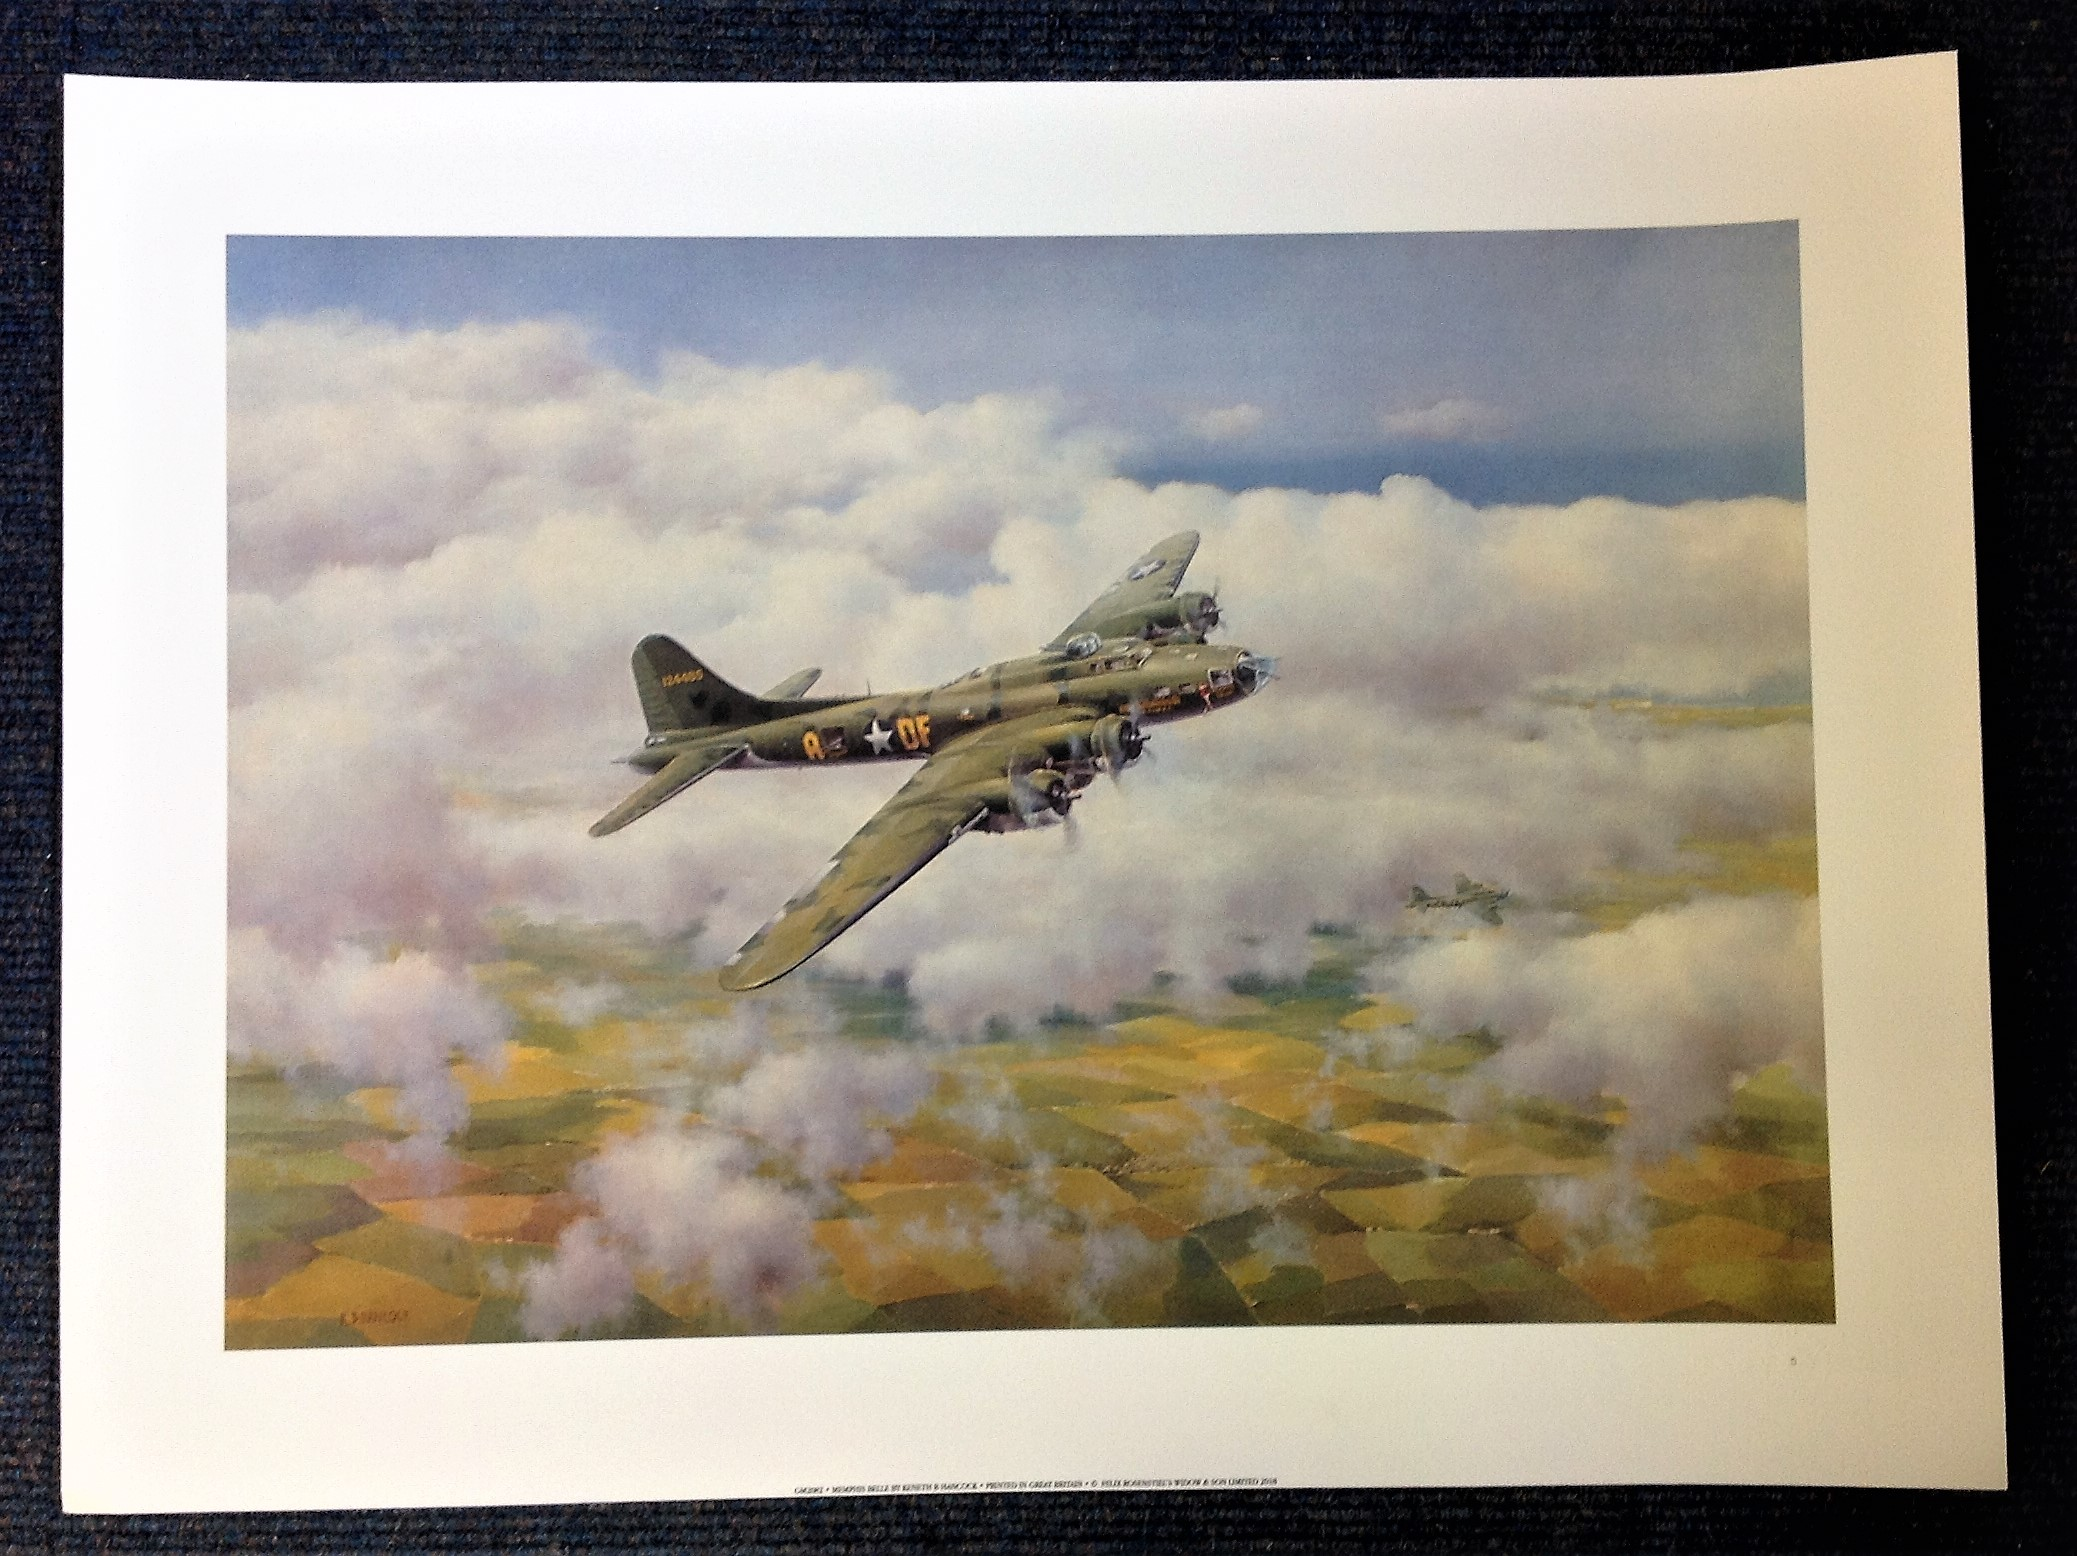 World War II 18x24 print titled Memphis Belle by the artist Kenneth B Hancock picturing the American